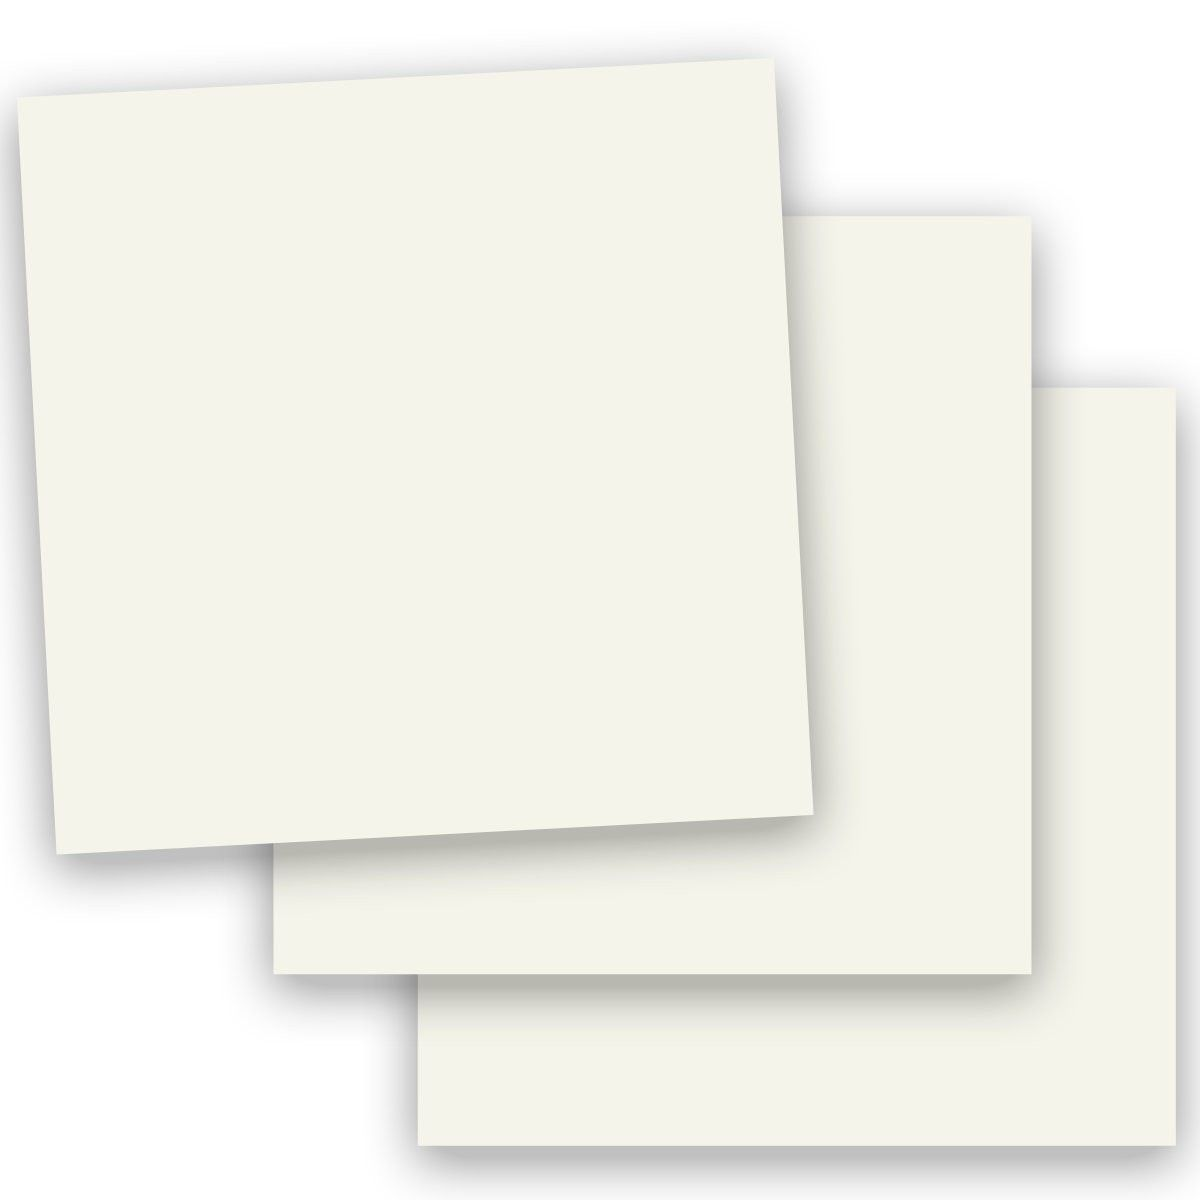 12 X 12 Cardstock Paper Pack Gilded Grey Ad Paper Cardstock Grey Gilded Pack Aff Cardstock Paper Paper Pack Card Stock